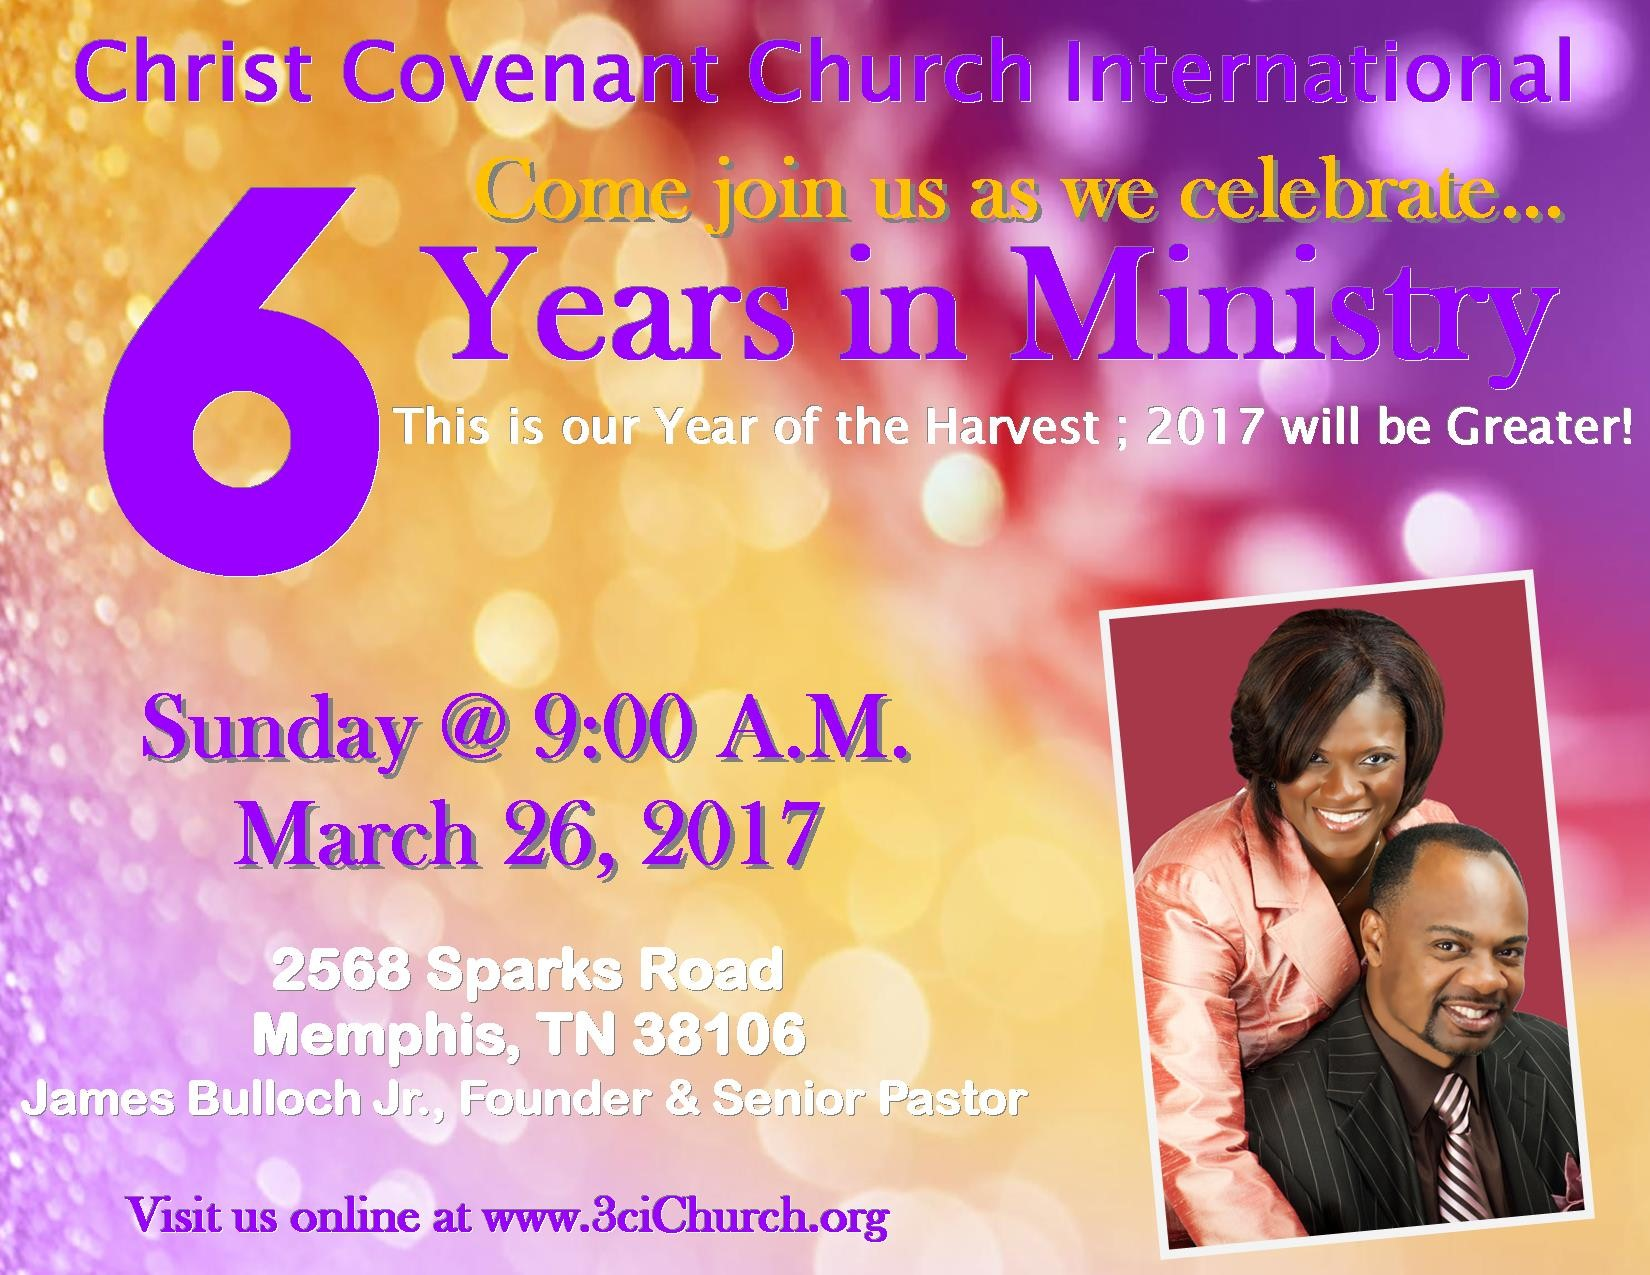 6 Years in Ministry